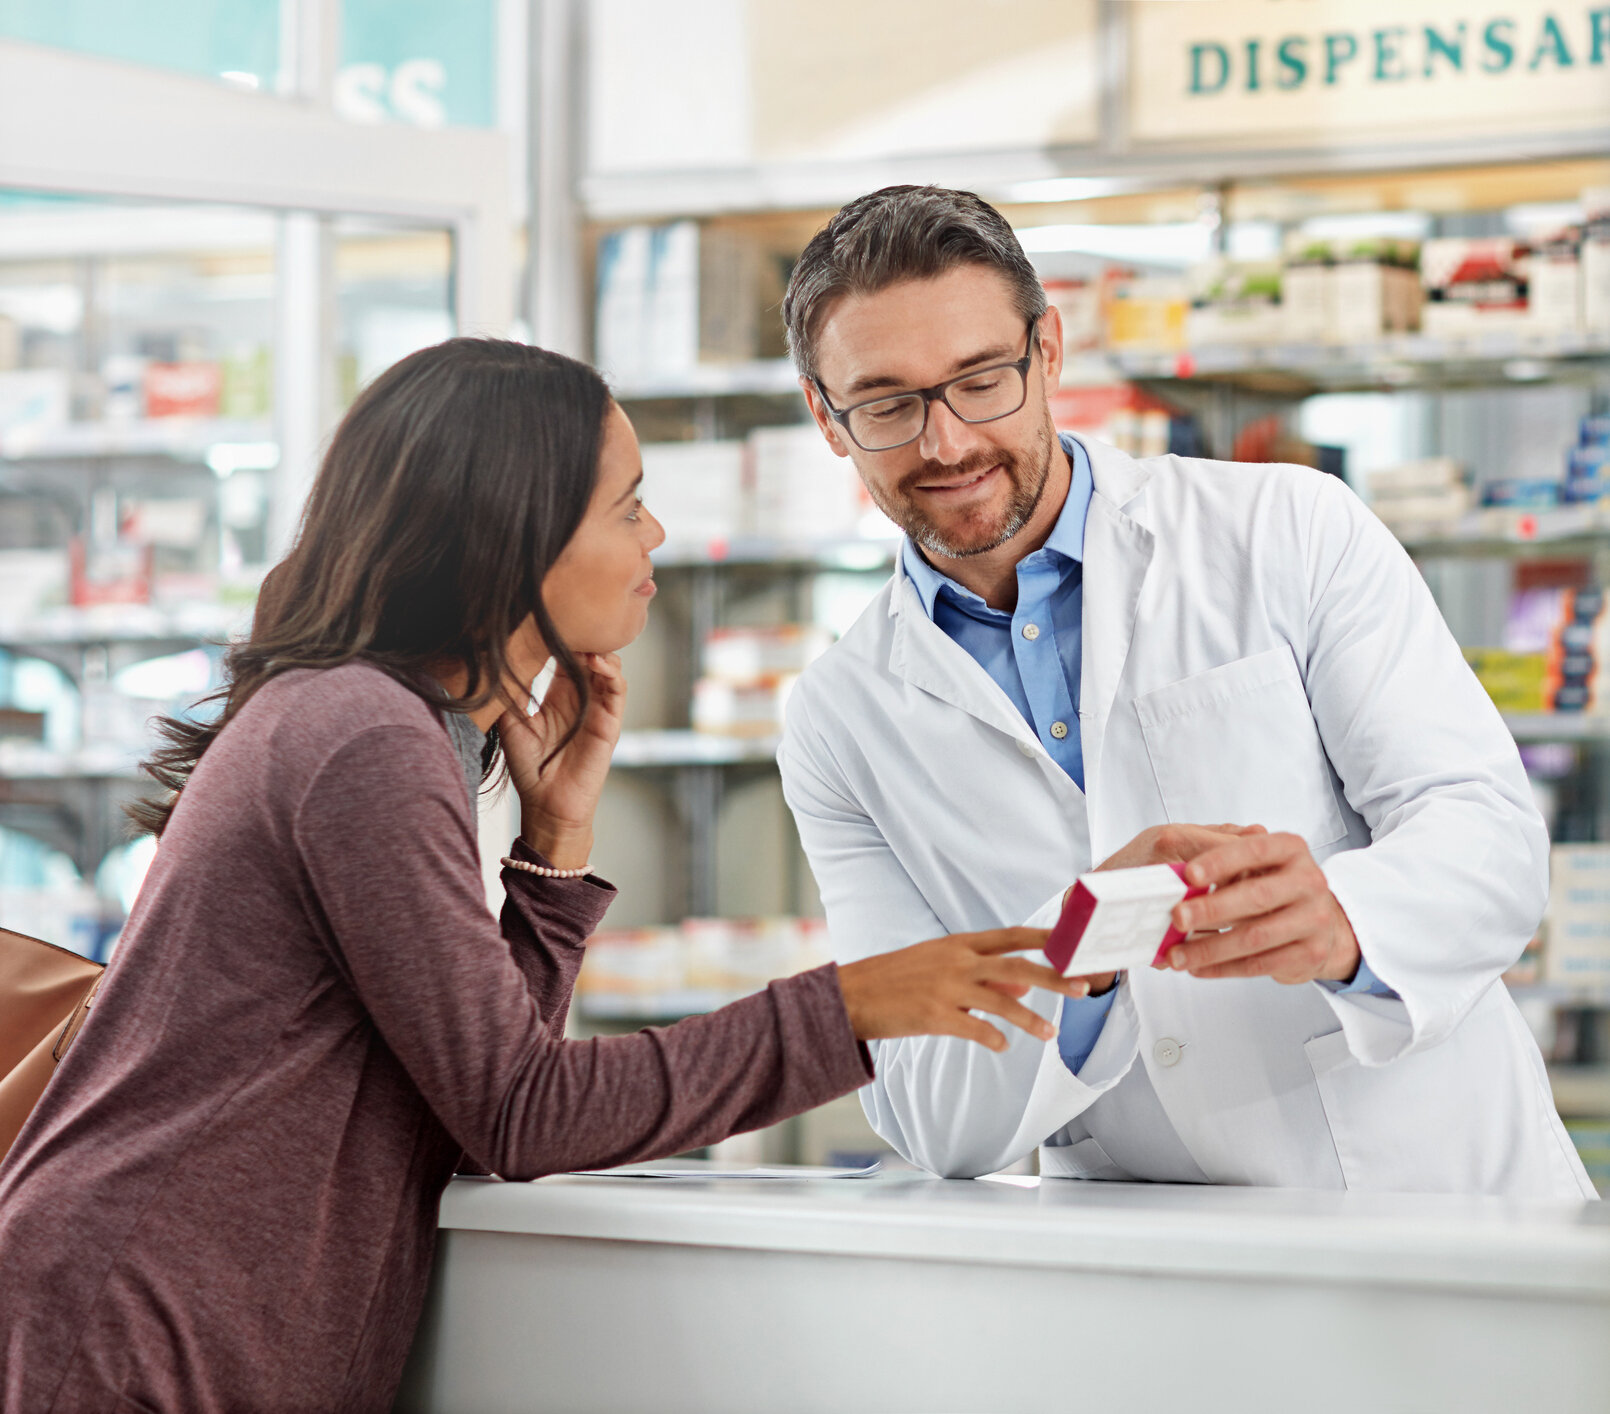 Pharmacists prescribe tobacco cessation products and help tobacco users quit tobacco.